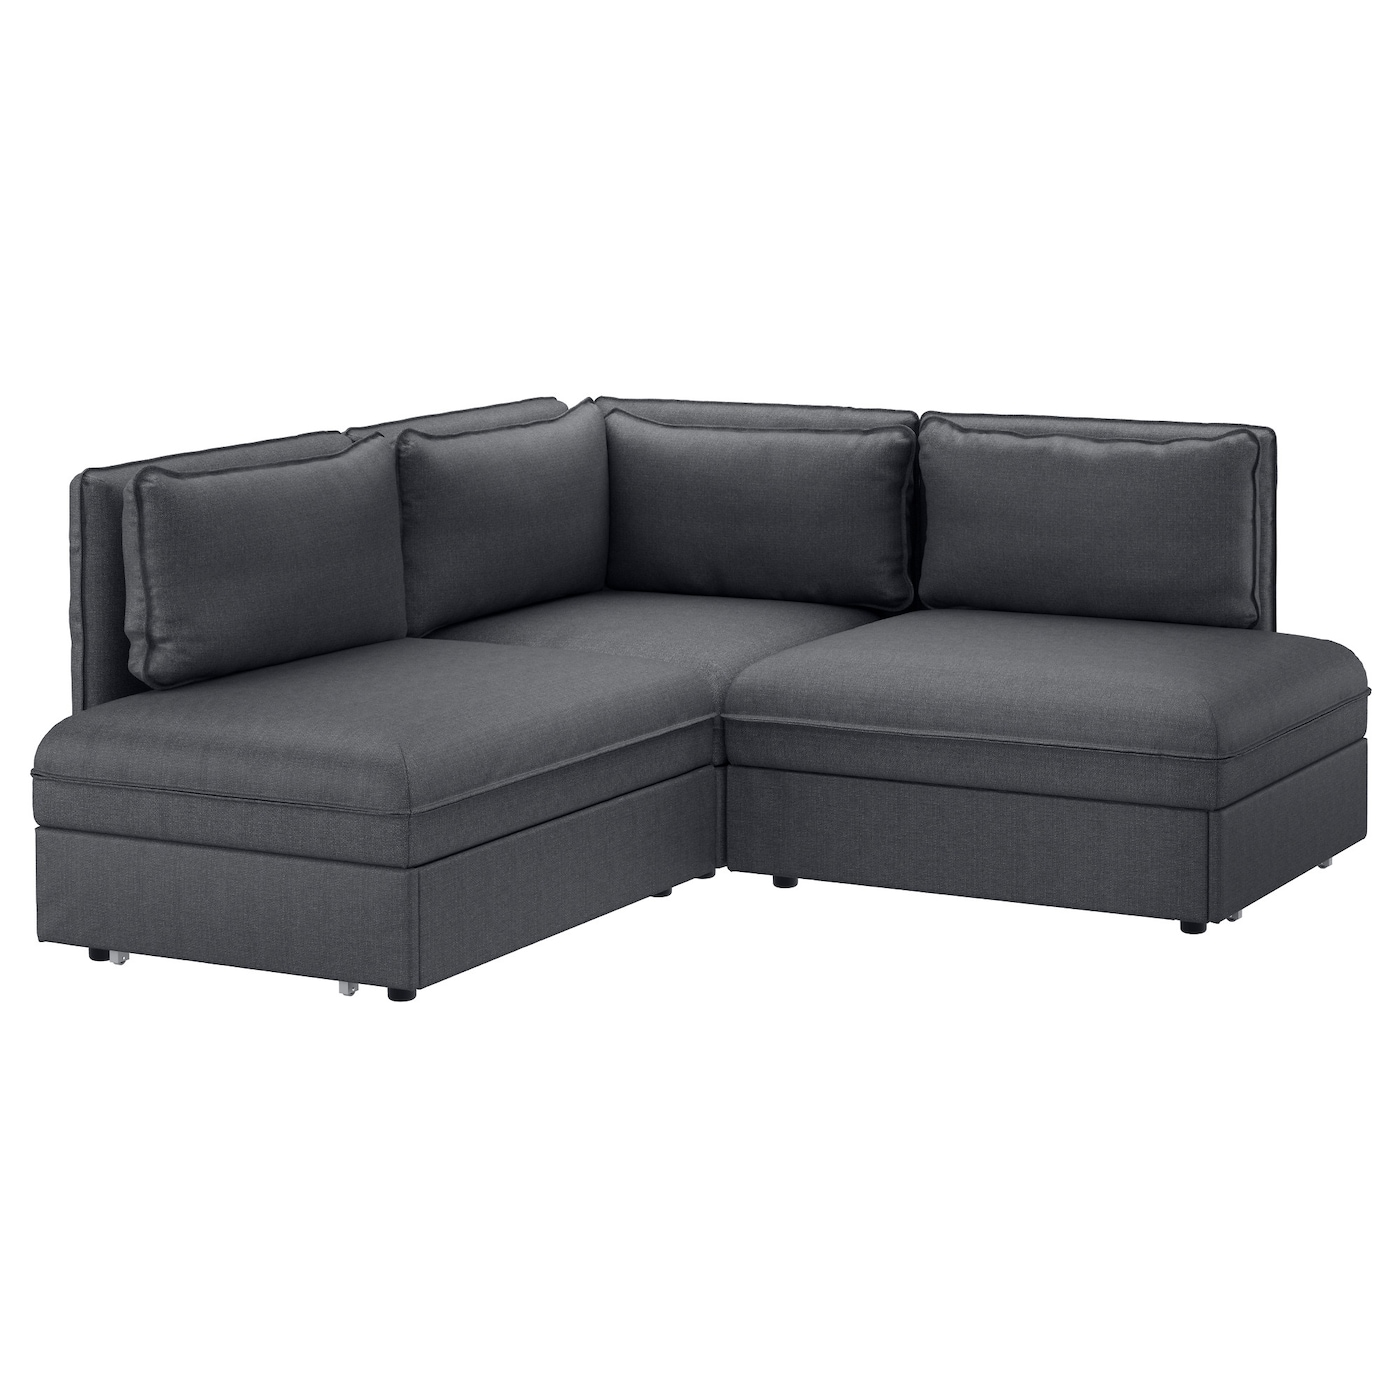 vallentuna 3 seat corner sofa with bed hillared dark grey ikea. Black Bedroom Furniture Sets. Home Design Ideas